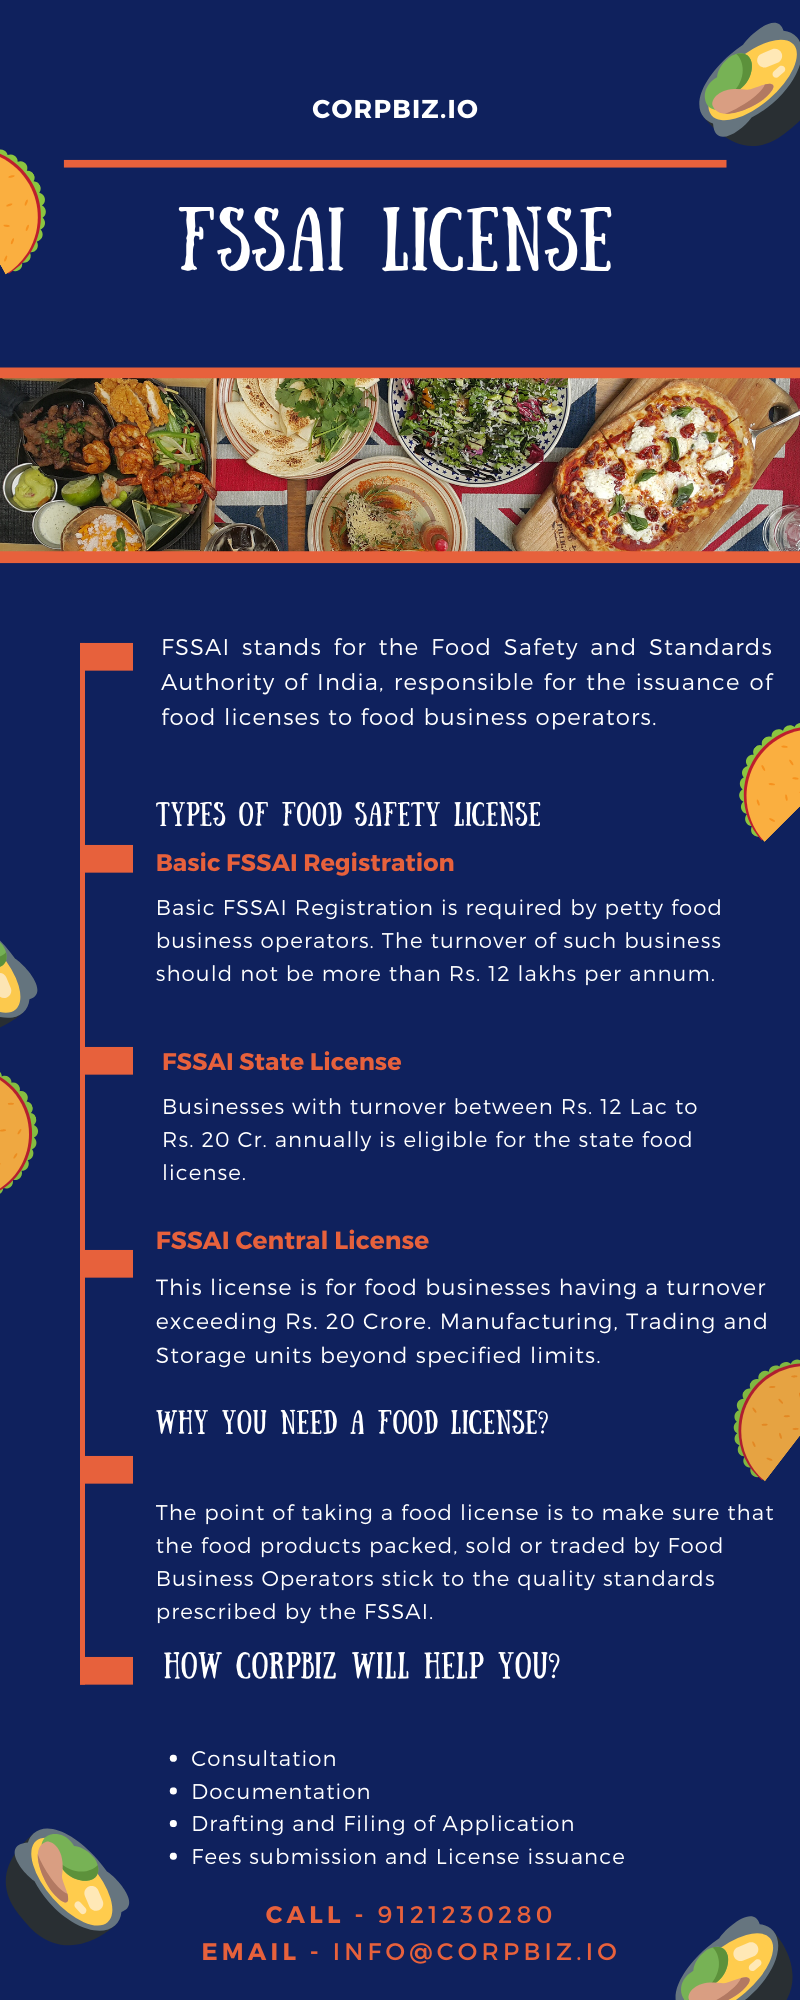 FSSAI stands for the Food Safety and Standards Authority